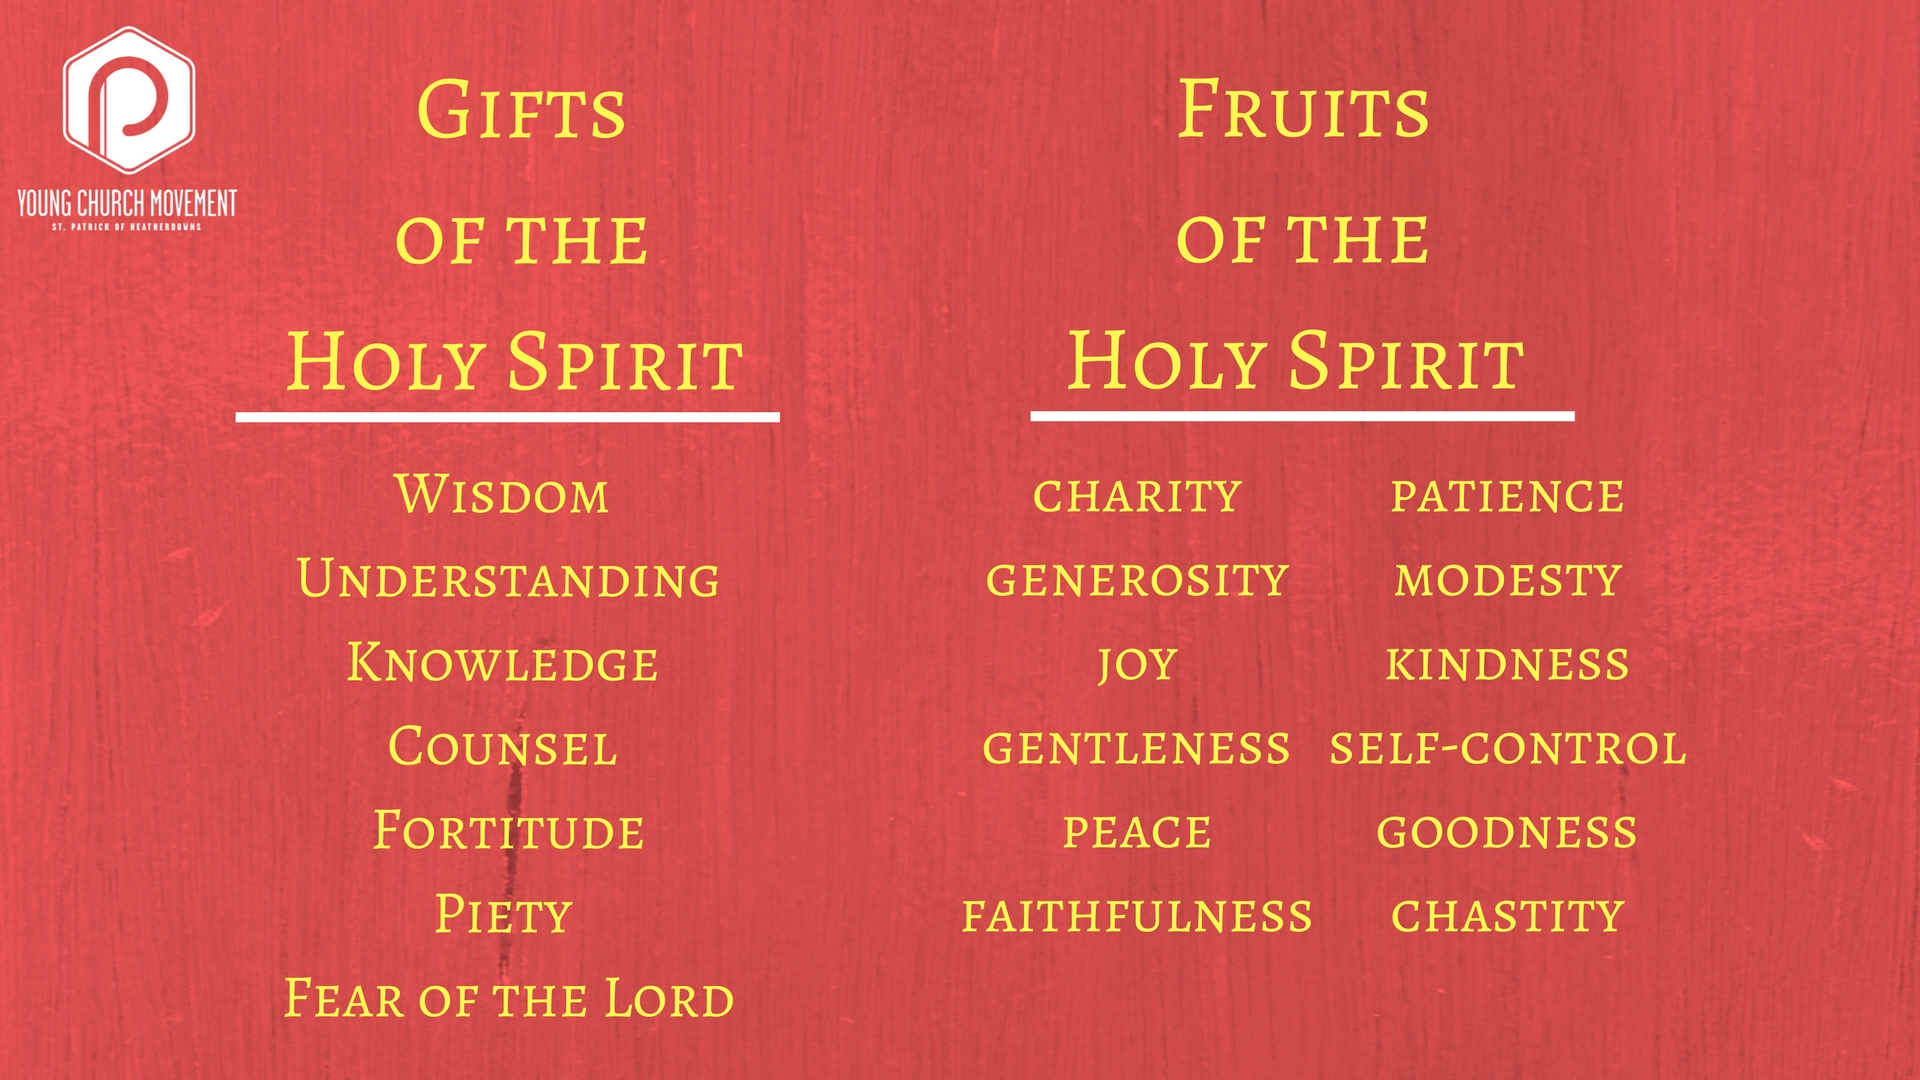 """""""Charity"""" can be interchanged with """"Love"""". However """"Charity"""" is a more accurate word for the fruit."""